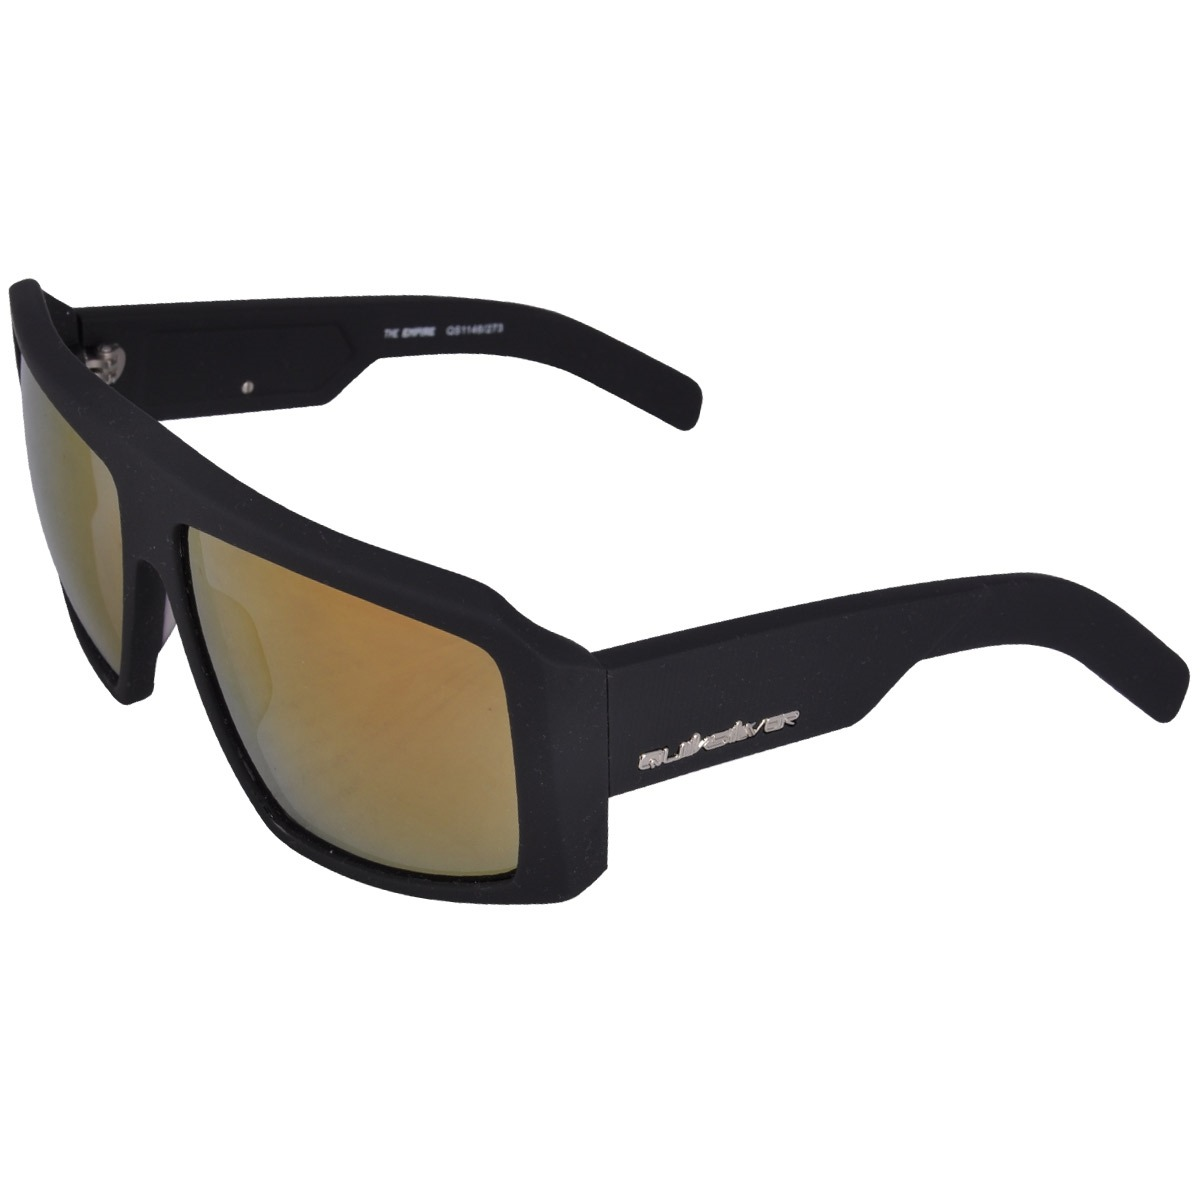 Óculos Quiksilver The Empire Ii Preto - Cut Wave - R  119,90 em ... 21c1ae75b1